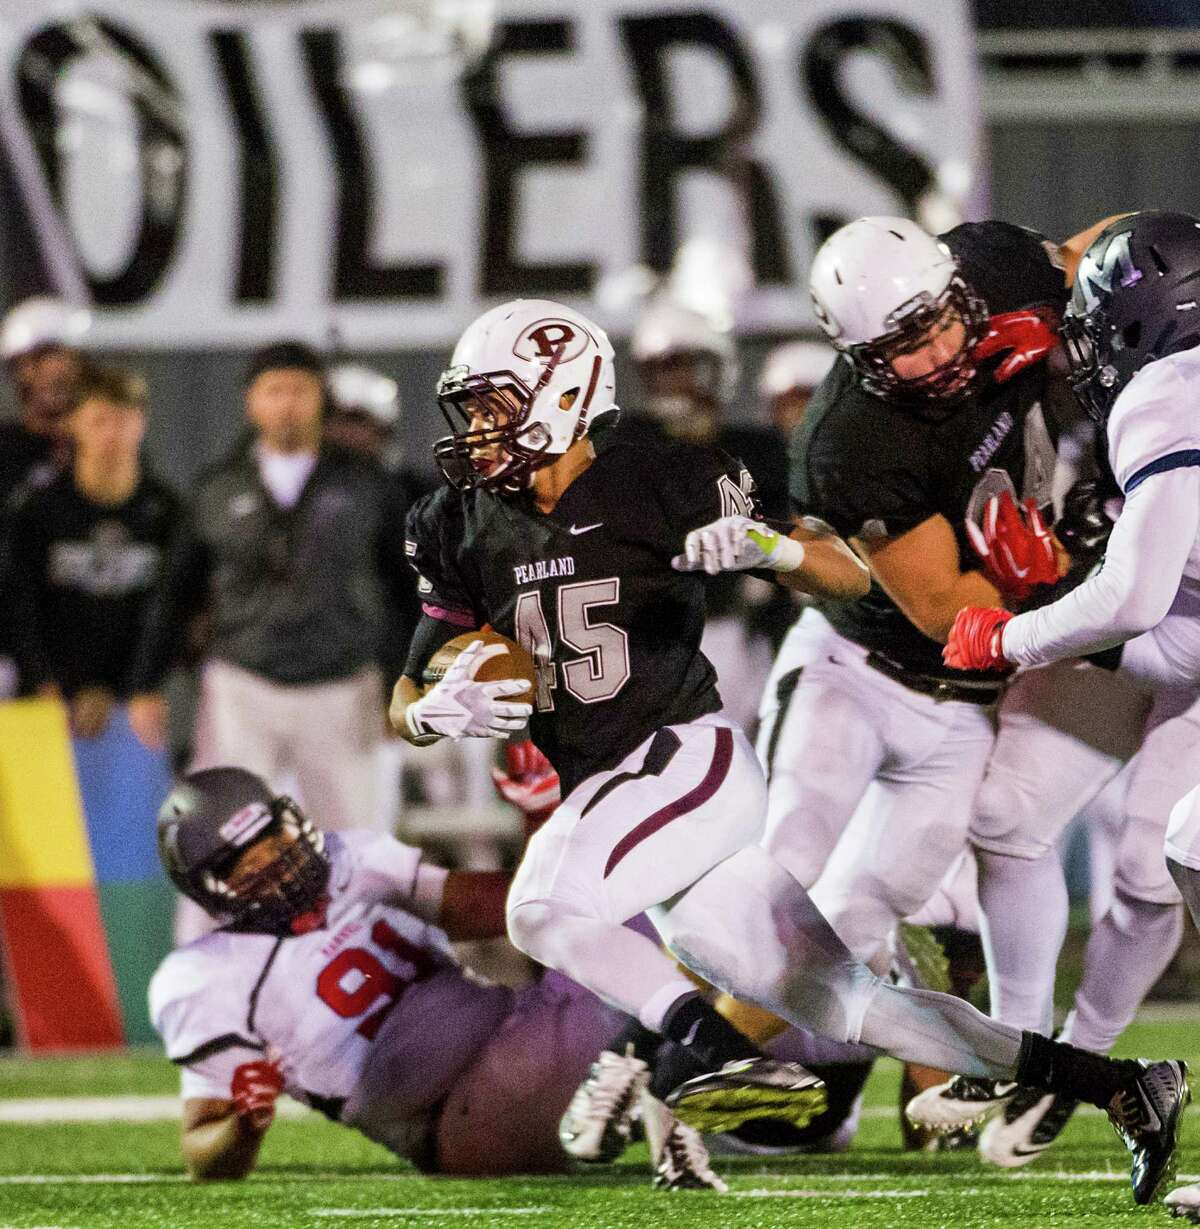 Pearland running back Davier Pinkston (45) races through the Manvel defense during the second half of a high school football game at The Rig, Friday, Nov. 7, 2014, in Pearland. ( Smiley N. Pool / Houston Chronicle )